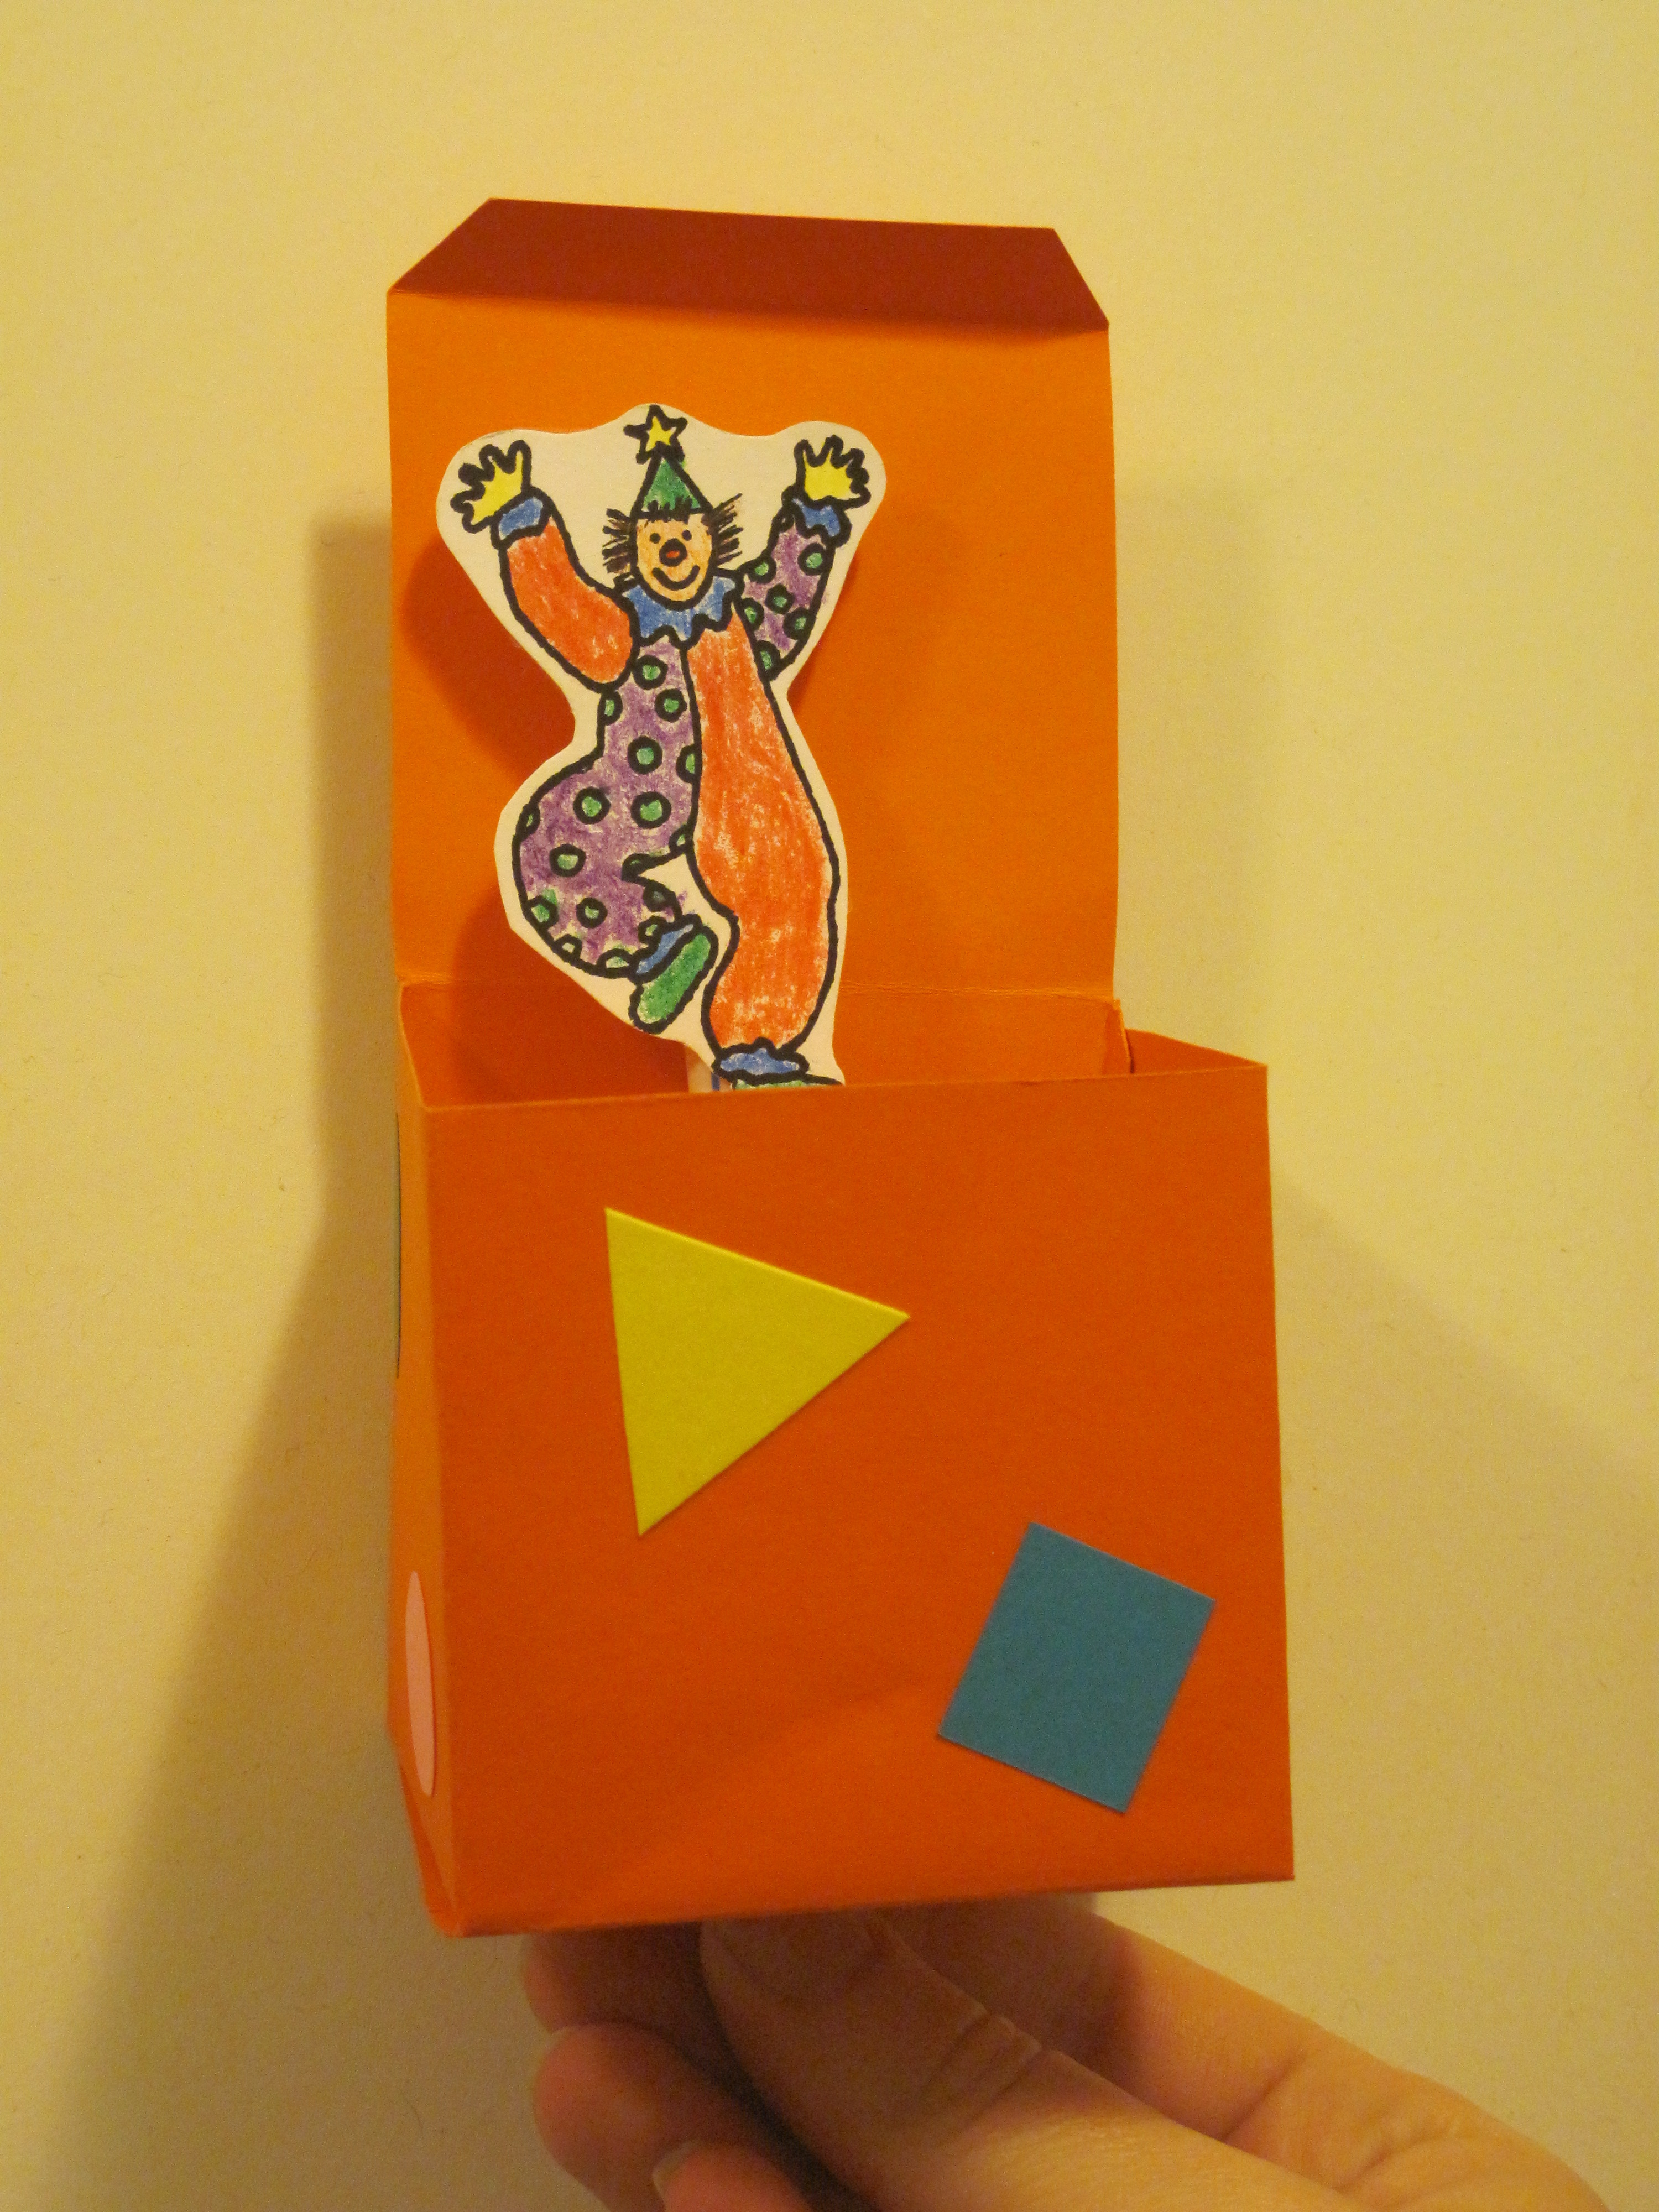 Boxes sunflower storytime instructions maxwellsz